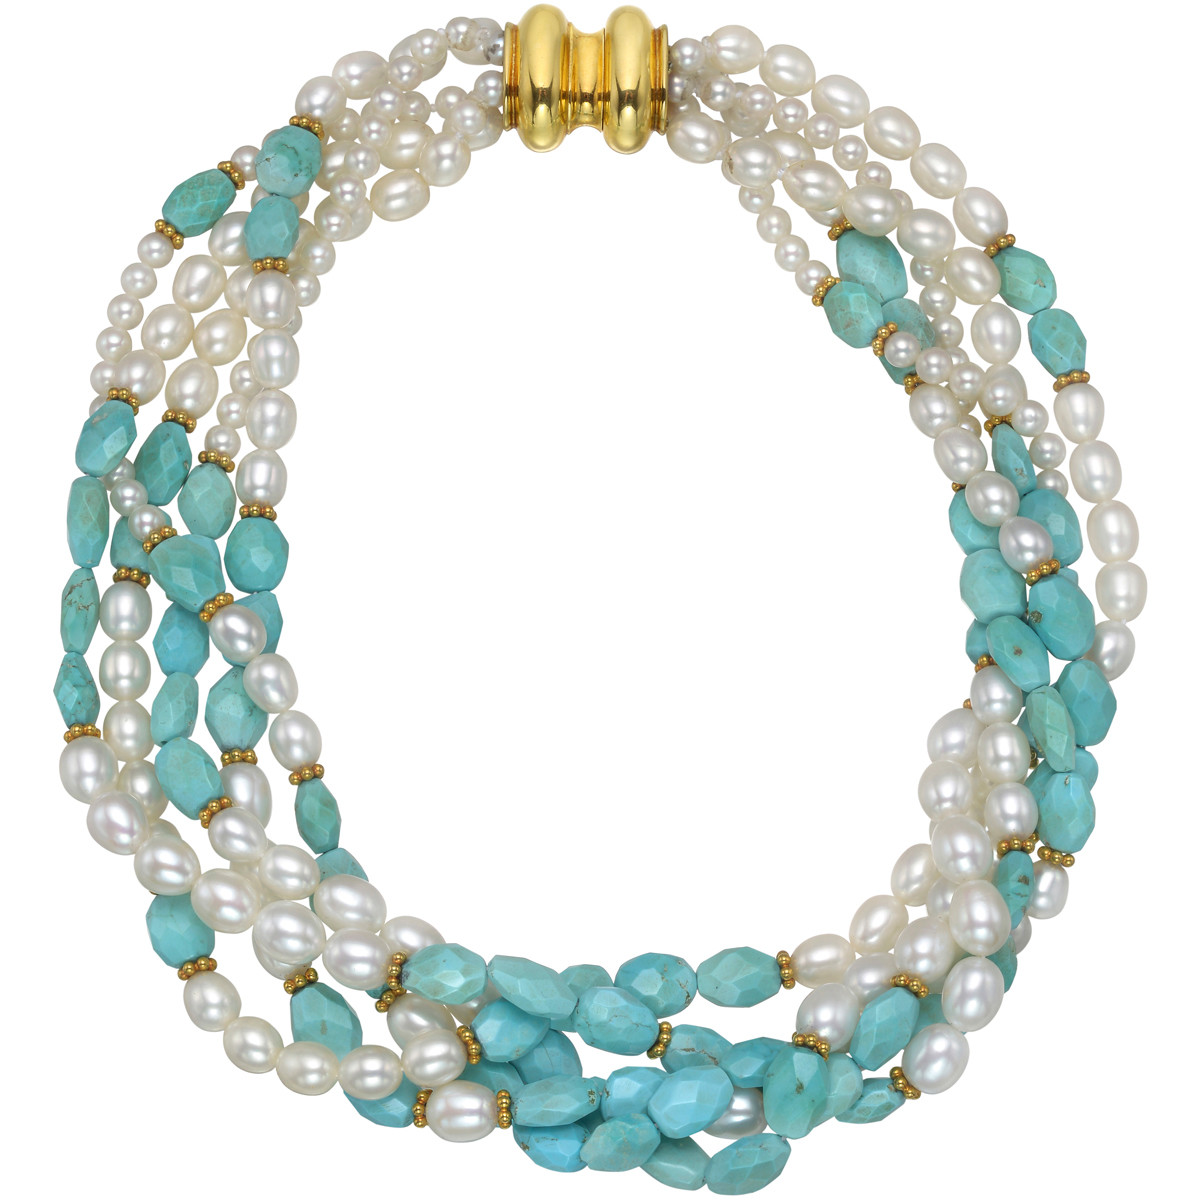 5-Strand Pearl & Turquoise Bead Torsade Necklace